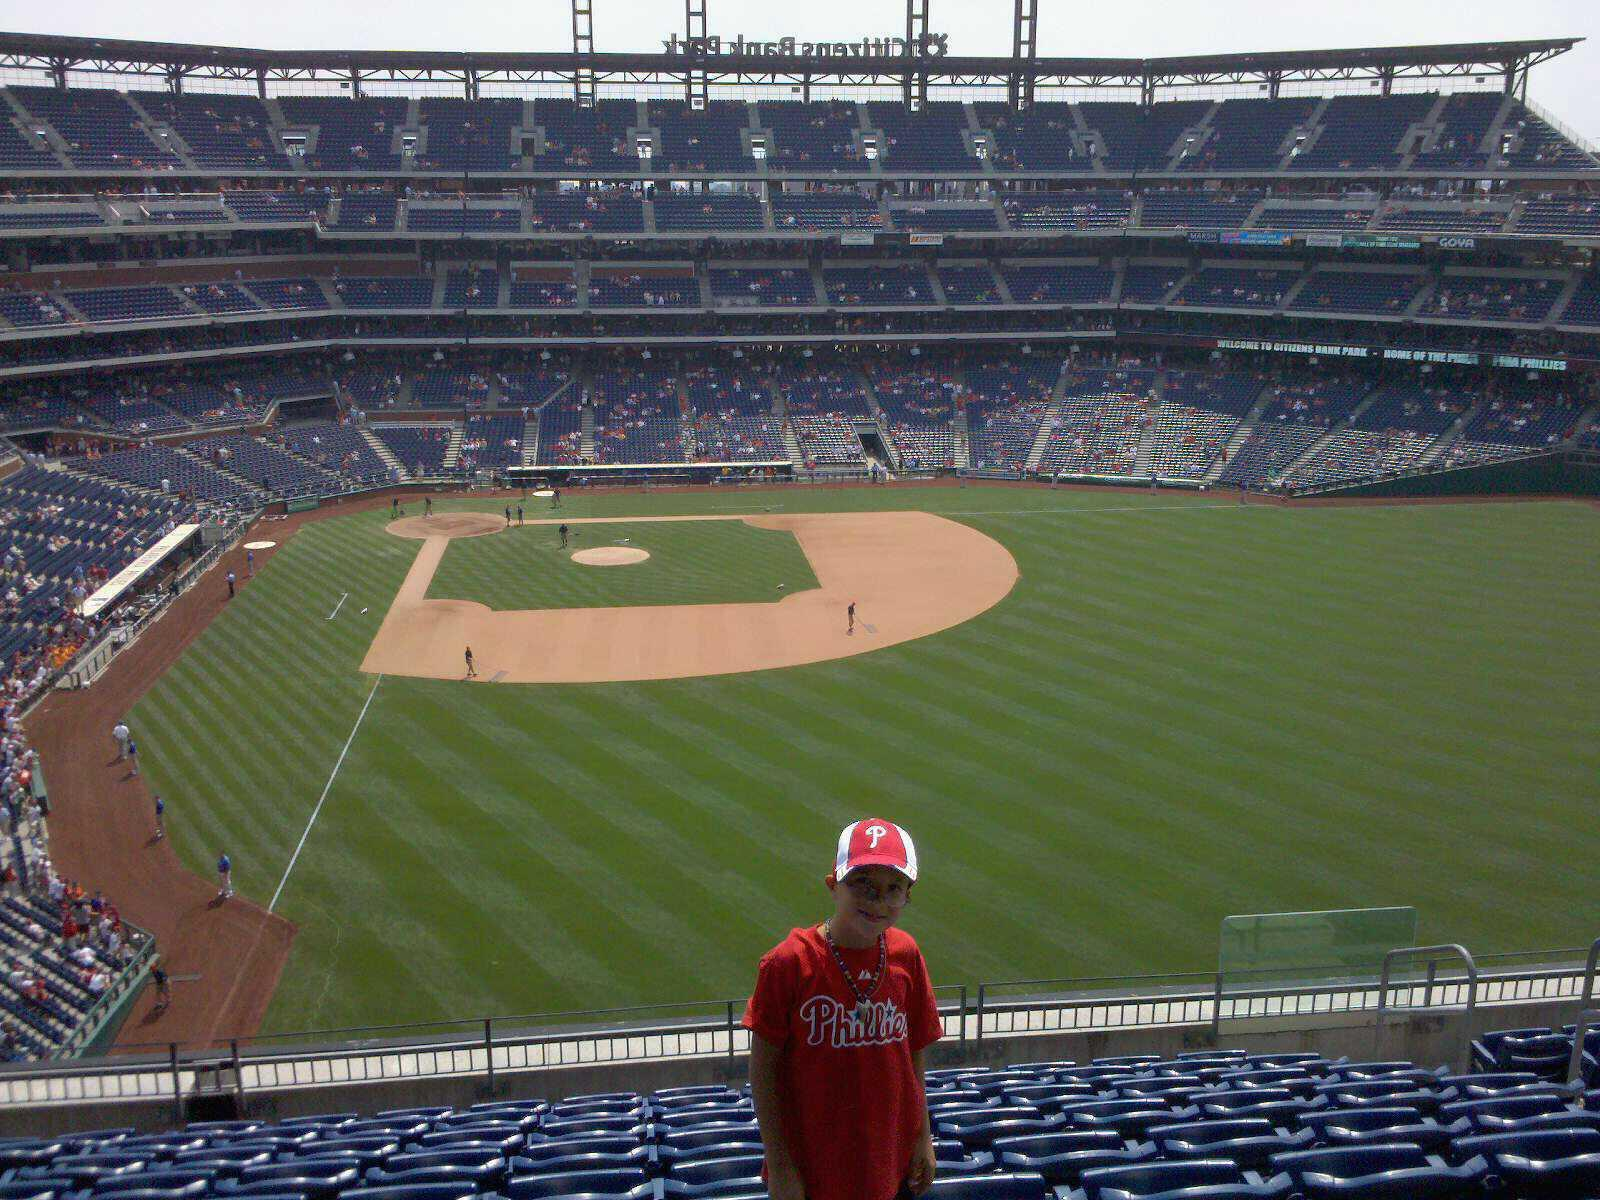 Citizens Bank Park Section 304 Row 10 Seat 9